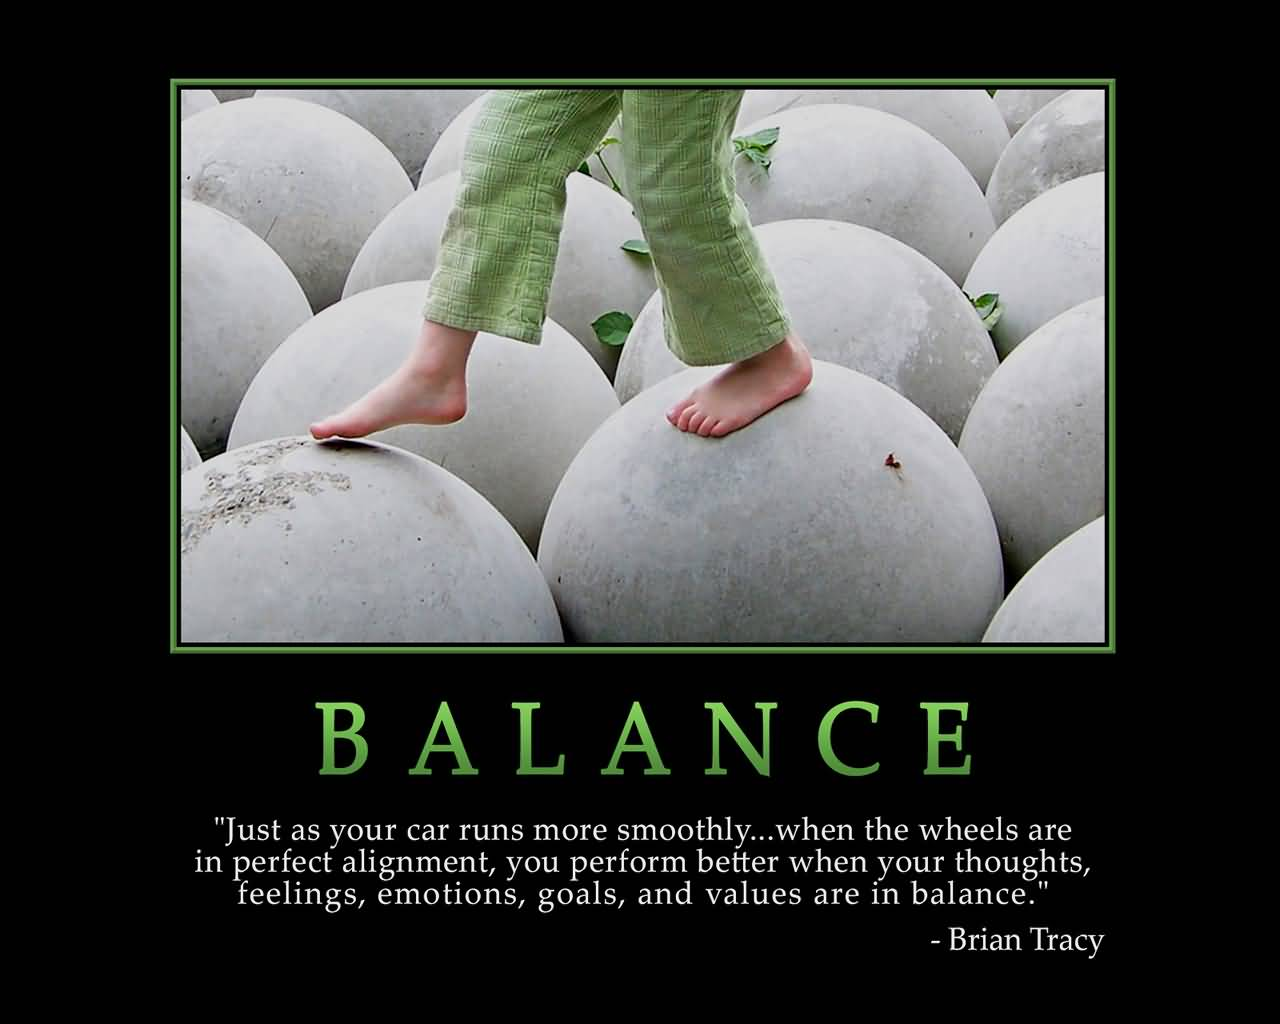 BALANCE Just as your car runs more smoothly...when the wheels are in perfect alignment, you perform better when your thoughts, feelings, emotions, goals... Brian Tracy